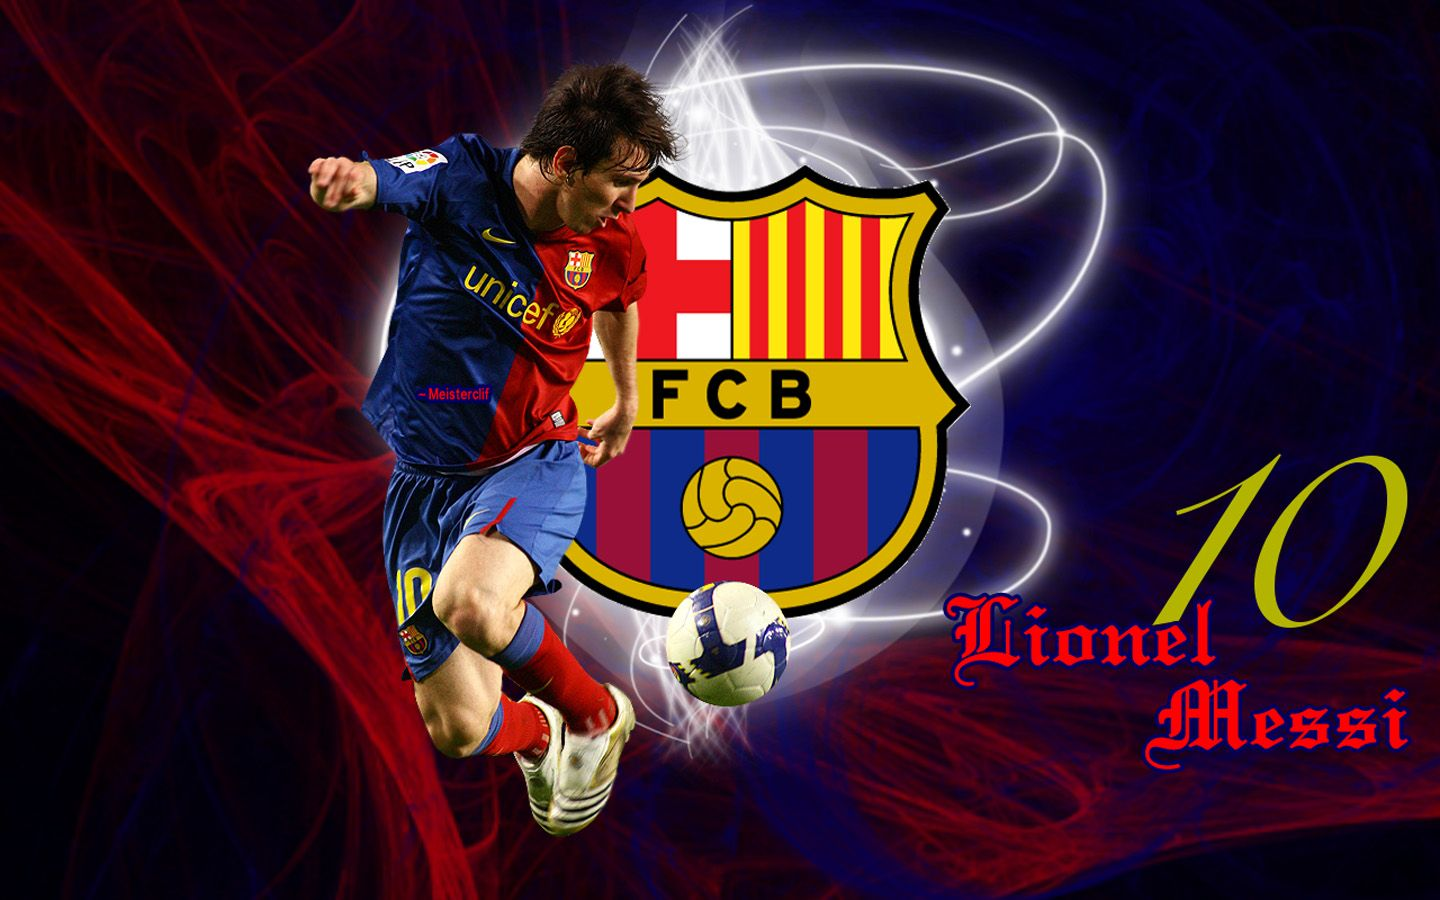 Fc Barcelona Tapeta Szukaj W Google Fc Barcelona Pinterest Fc Barcelona And Wallpaper